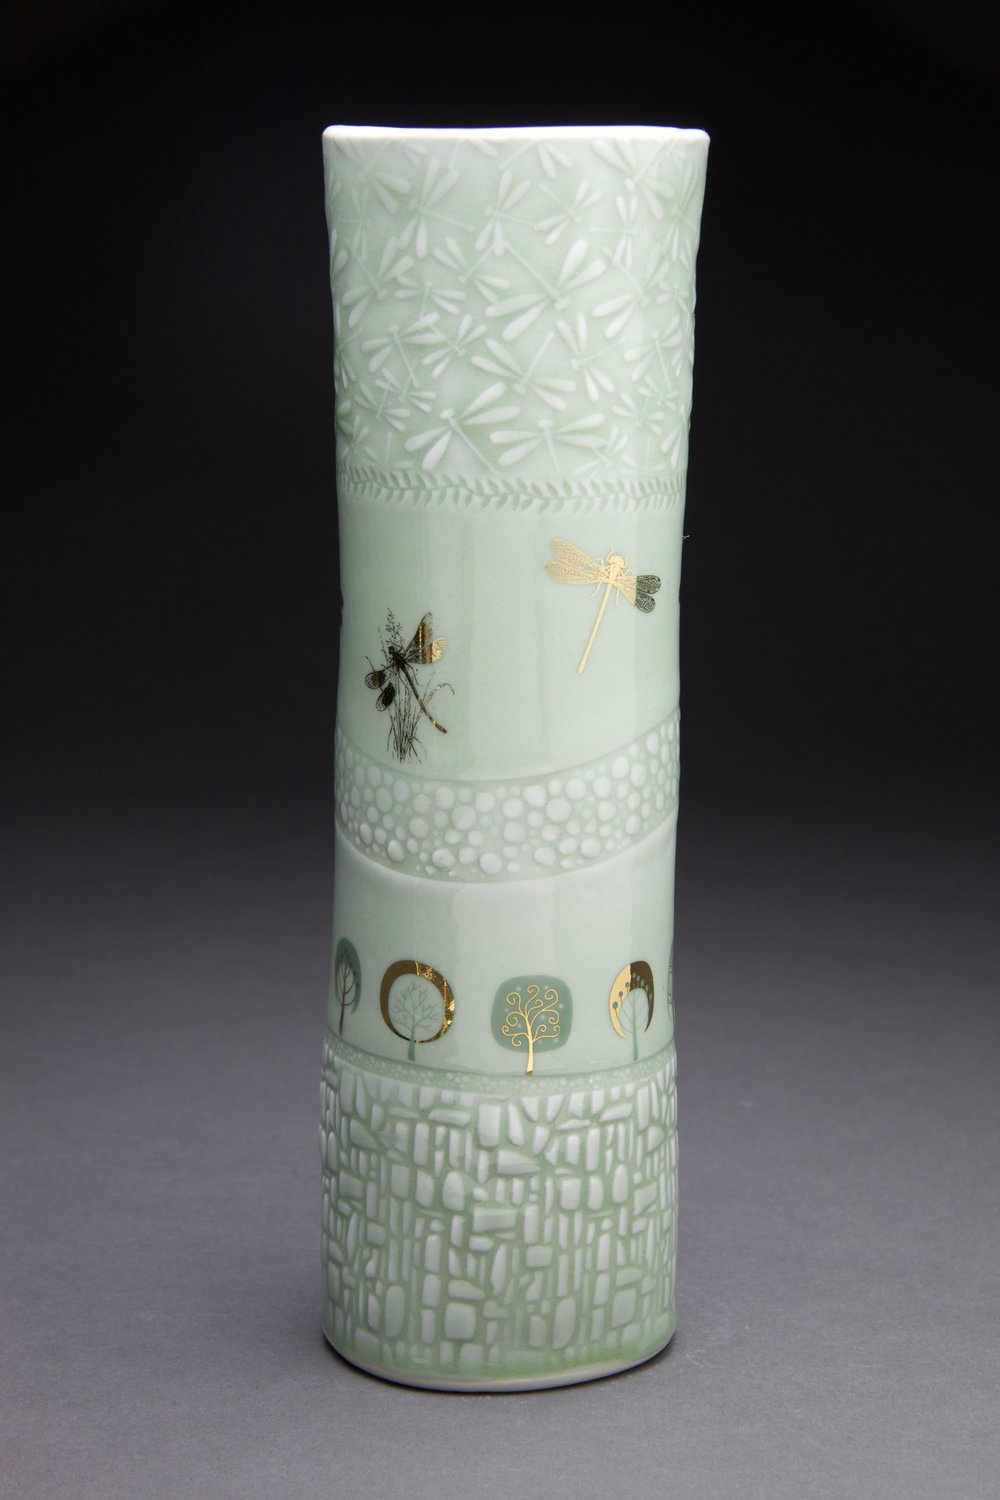 5x5x13 in vase. Light sage glaze with gold decals